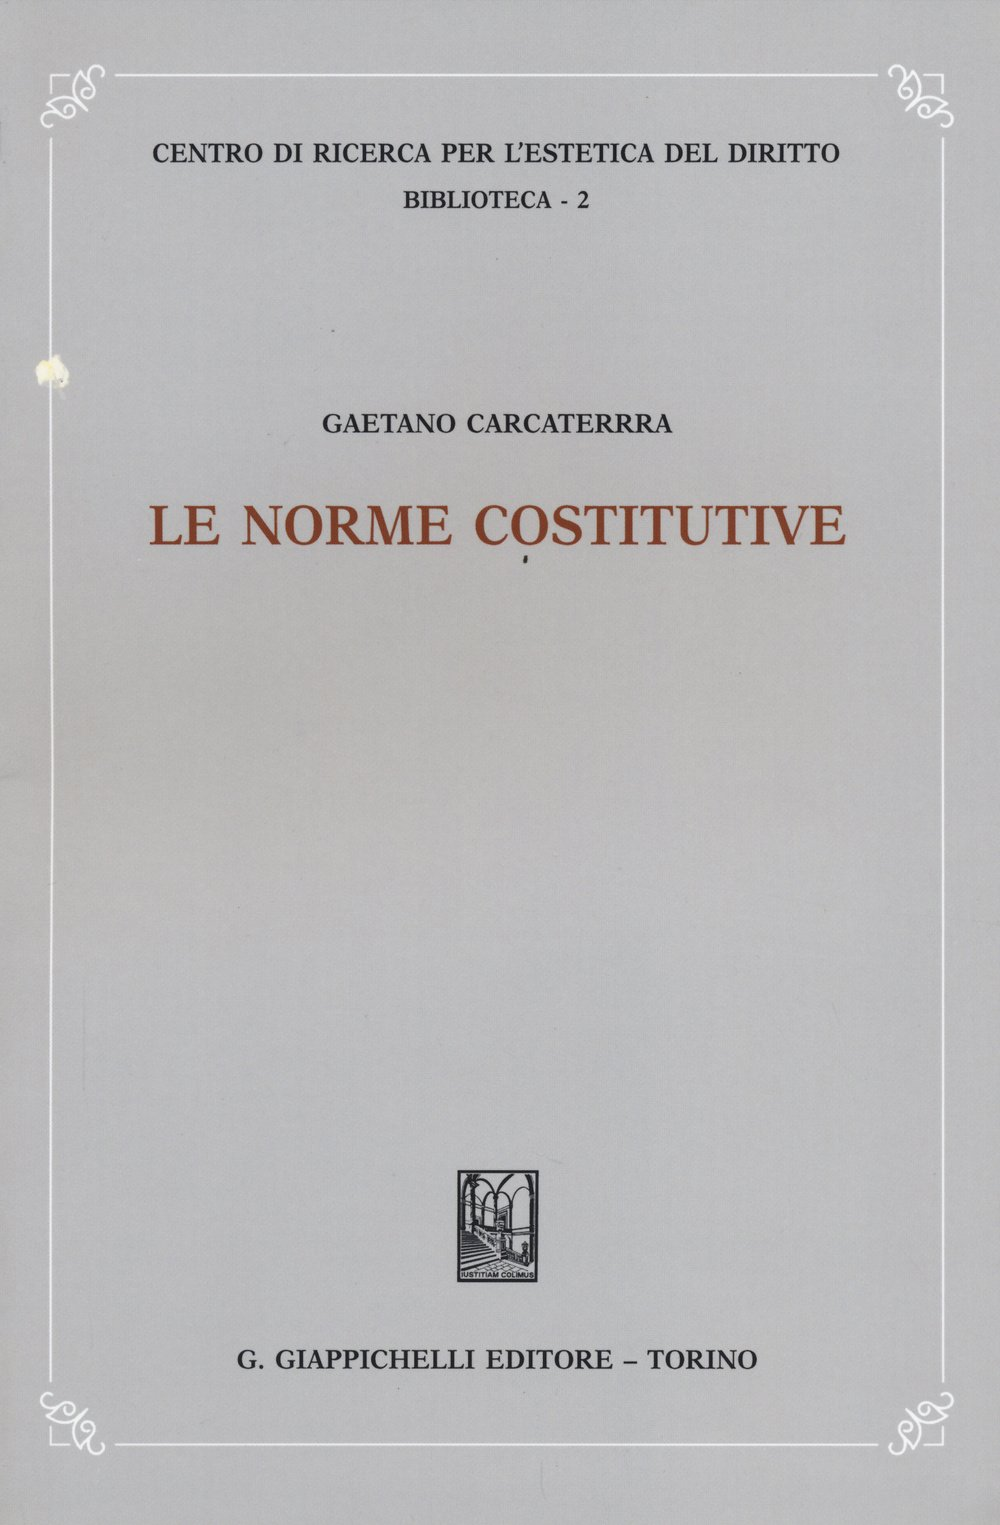 Le norme costitutive